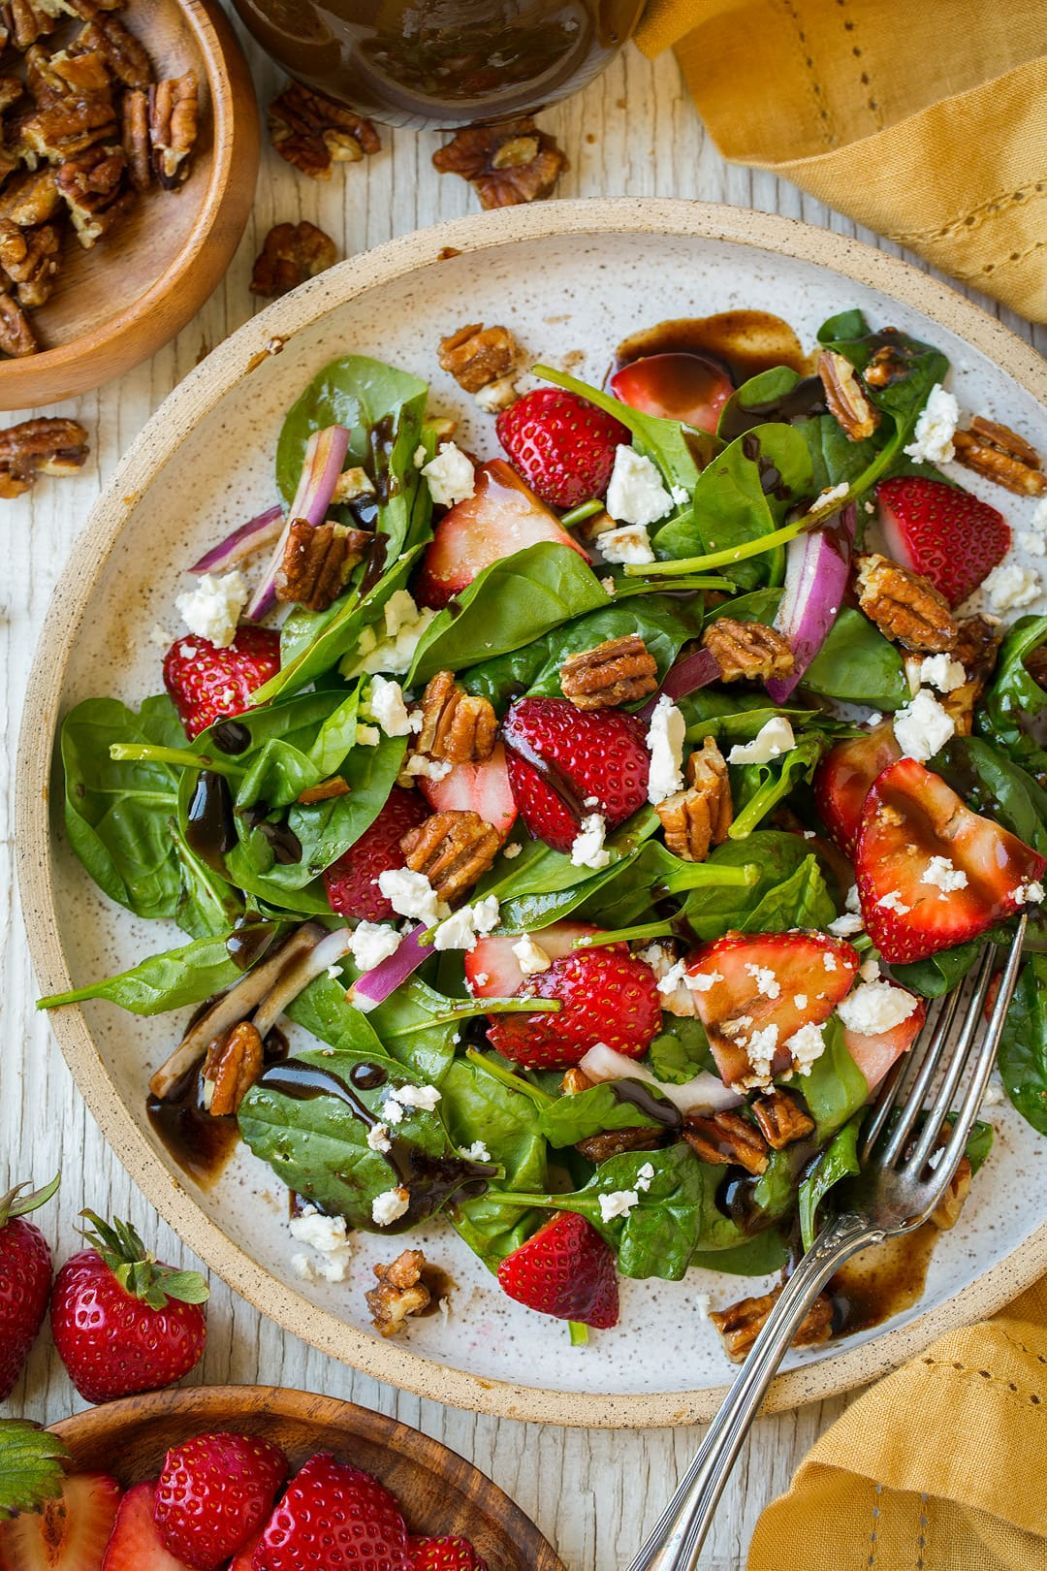 Strawberry Spinach Salad with Candied Pecans Feta and Balsamic Vinaigrette